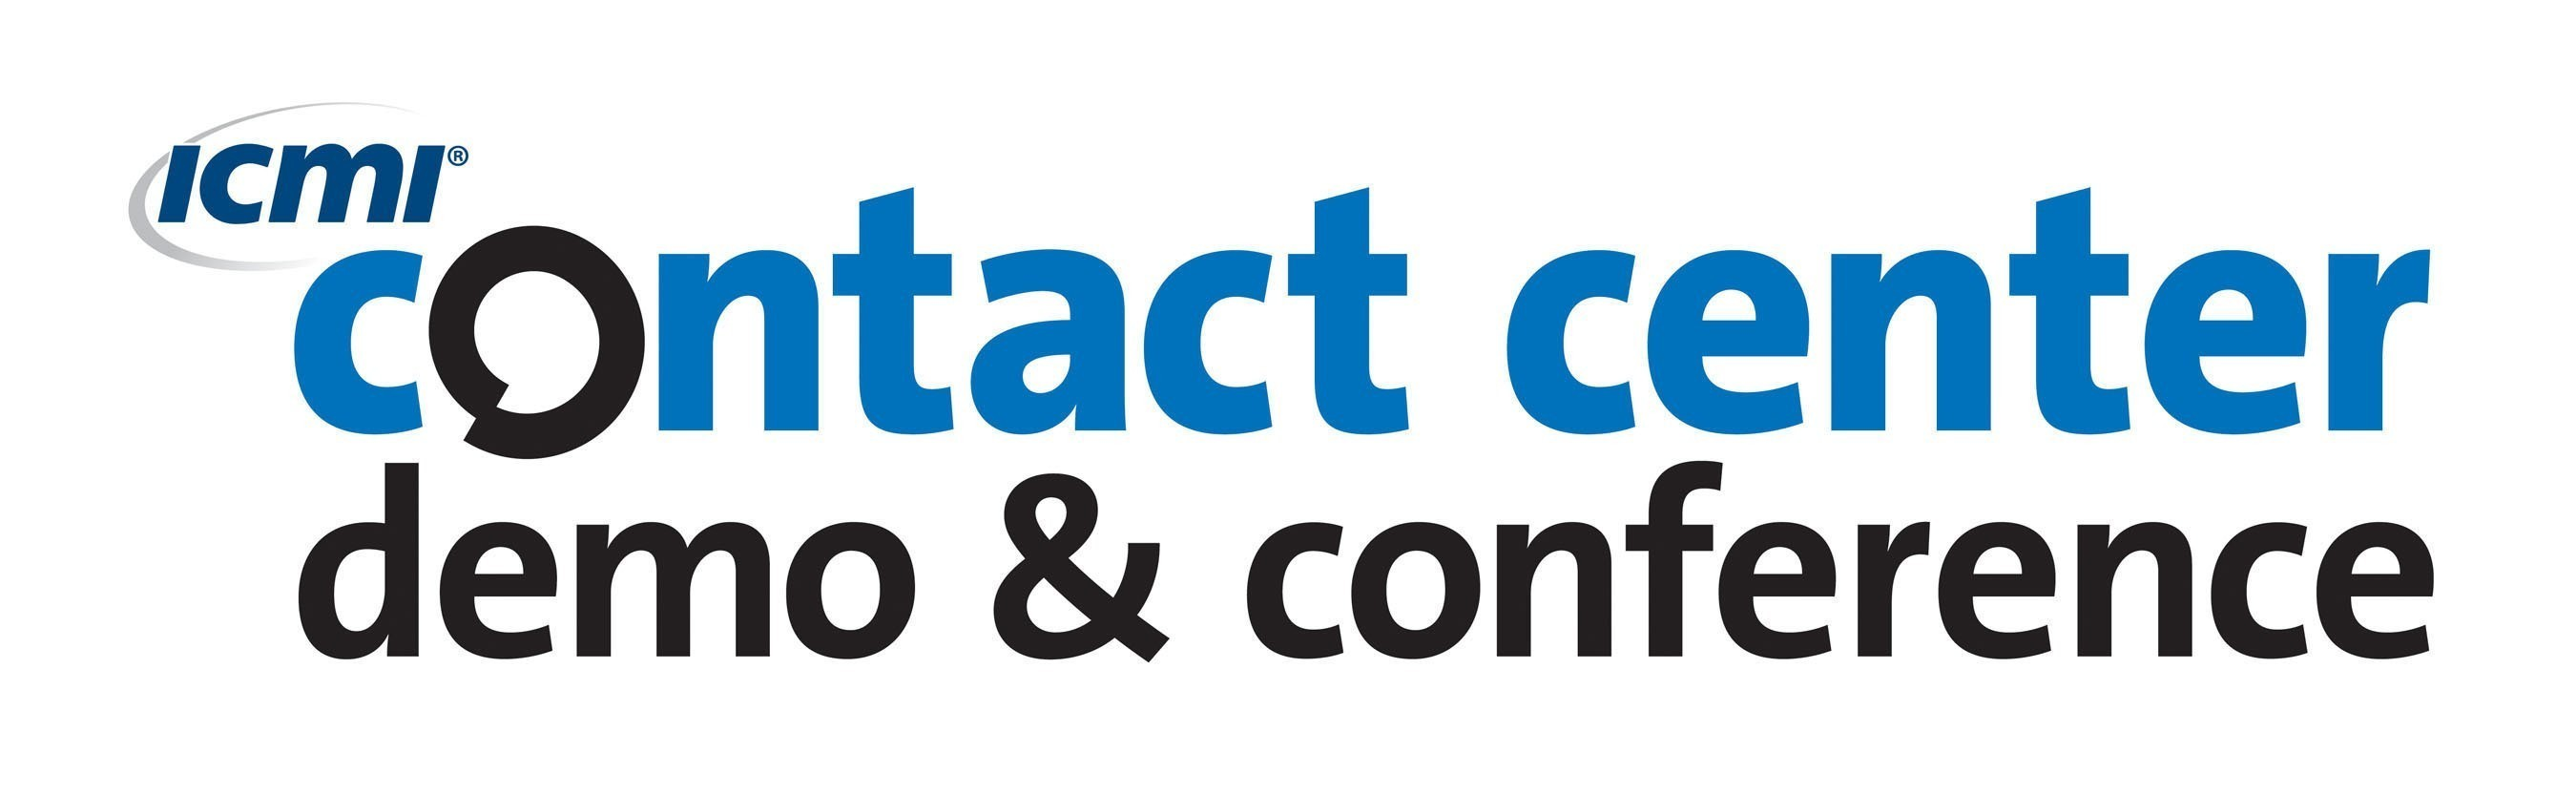 The ICMI Contact Center Demo and Conference takes place October 19-21, 2015 at the Rio in Las Vegas